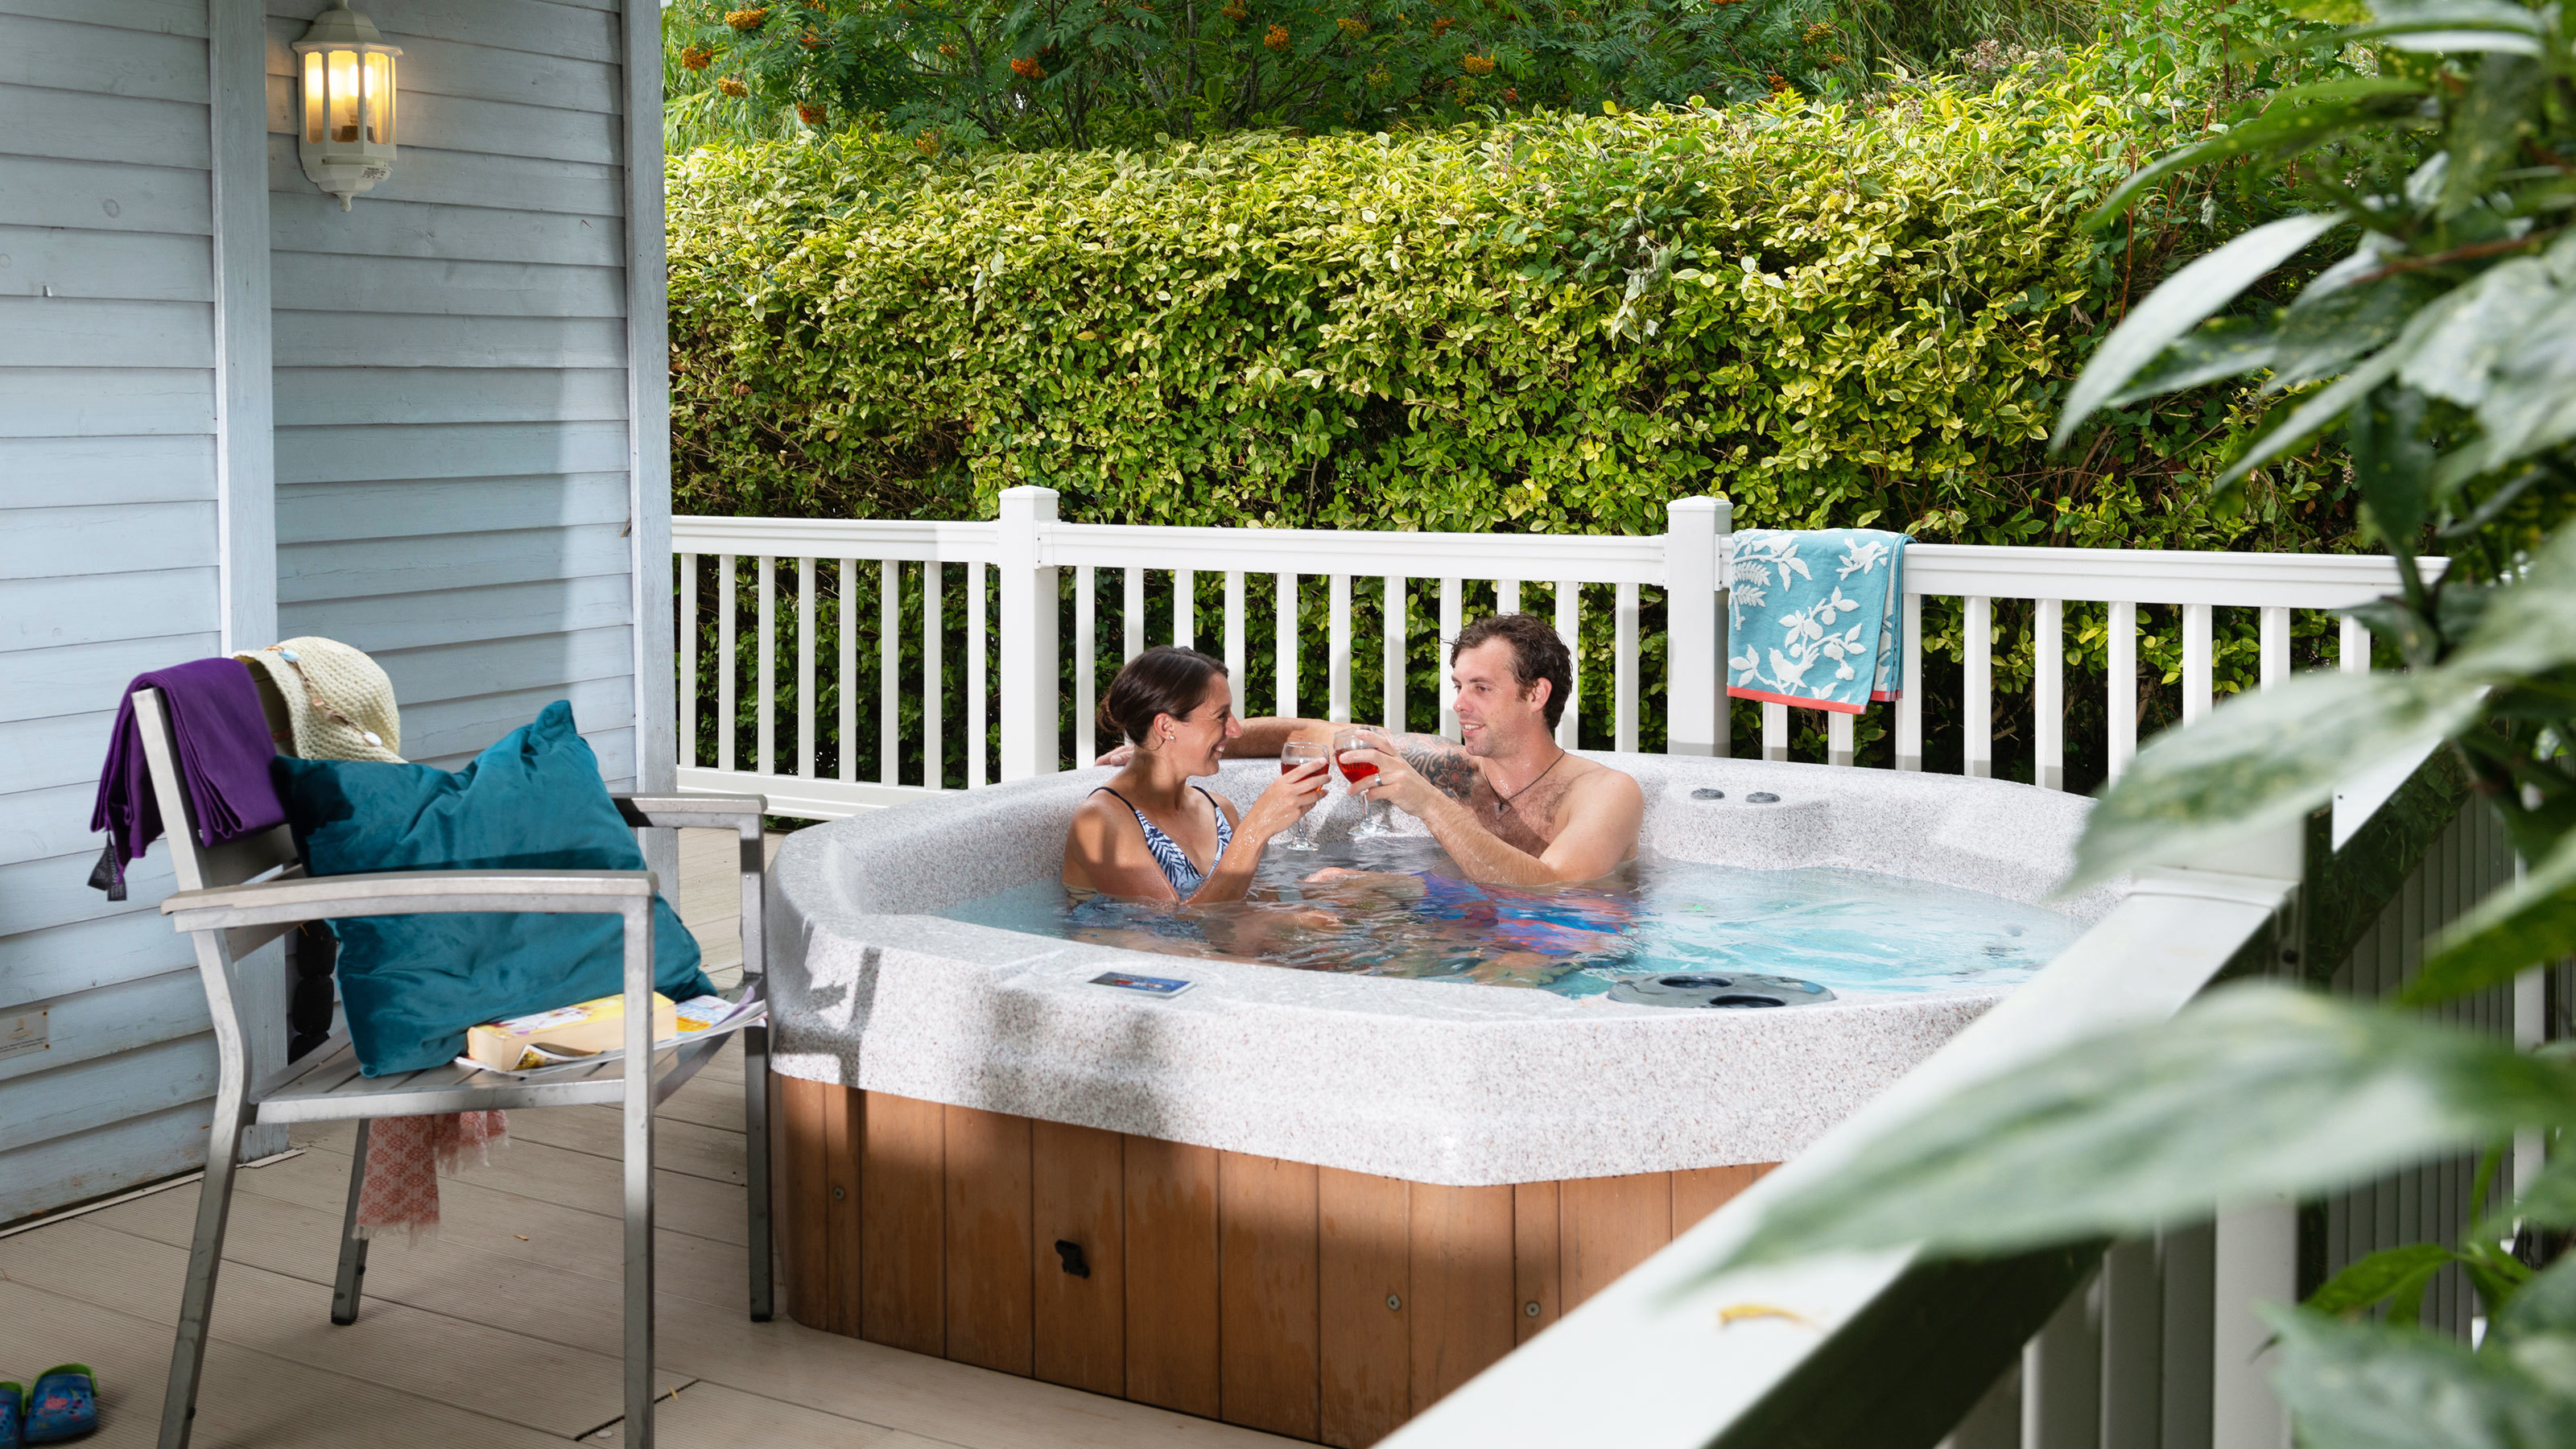 Couple-relaxing-with-a-glass-of-wine-in-hot-tub